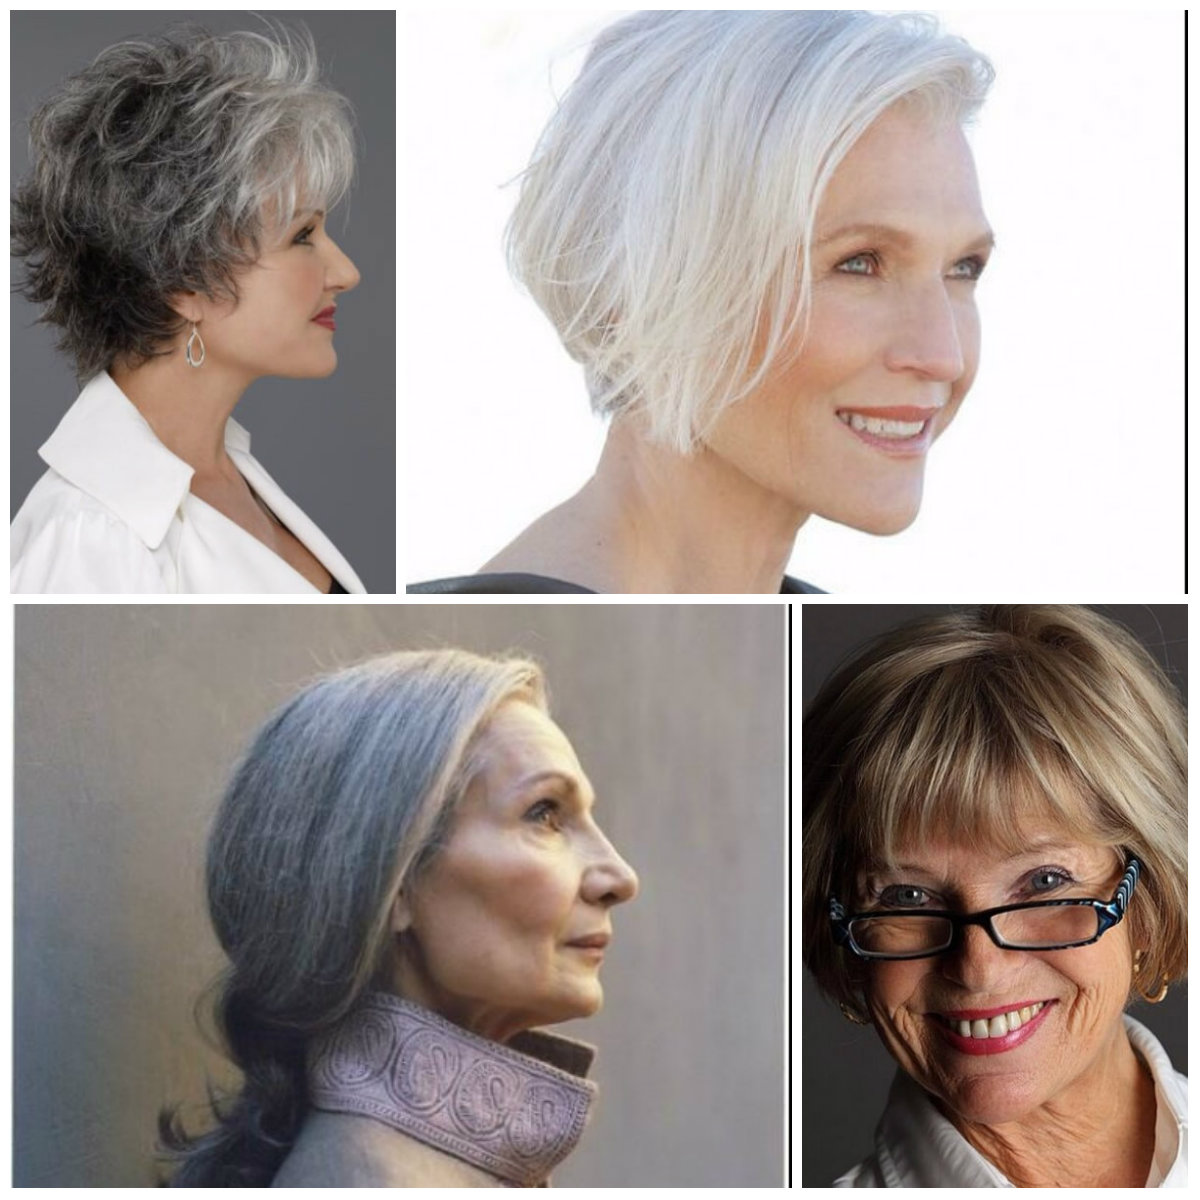 "Hairstyle ideas for women over 50 ""width ="" 500 ""height ="" 500 ""data-jpibfi-post-excerpt ="" ""data-jpibfi-post-url ="" http://www.frisuren-2018.com/frisurideen-fuer -women-over-50 / ""data-jpibfi-post-title ="" Hairstyle ideas for women over 50 ""data-jpibfi-src ="" http://www.frisuren-2018.com/wp-content/uploads/2019/ 05 / hairstyle ideas-for-women-over-50.jpg ""/></p> <p><strong>Chin length haircut</strong></p> <p>The stunning Meg Ryan looks like her 20s, but the fact is she is 55. You probably will not believe it, but it is true. It is a great source of inspiration for women who stick to the same haircut for years. She rocks her medium-length haircut with natural waves. Choose a proper, firm hair color that matches your complexion and highlights your chin-length body.</p>  <p><span id="